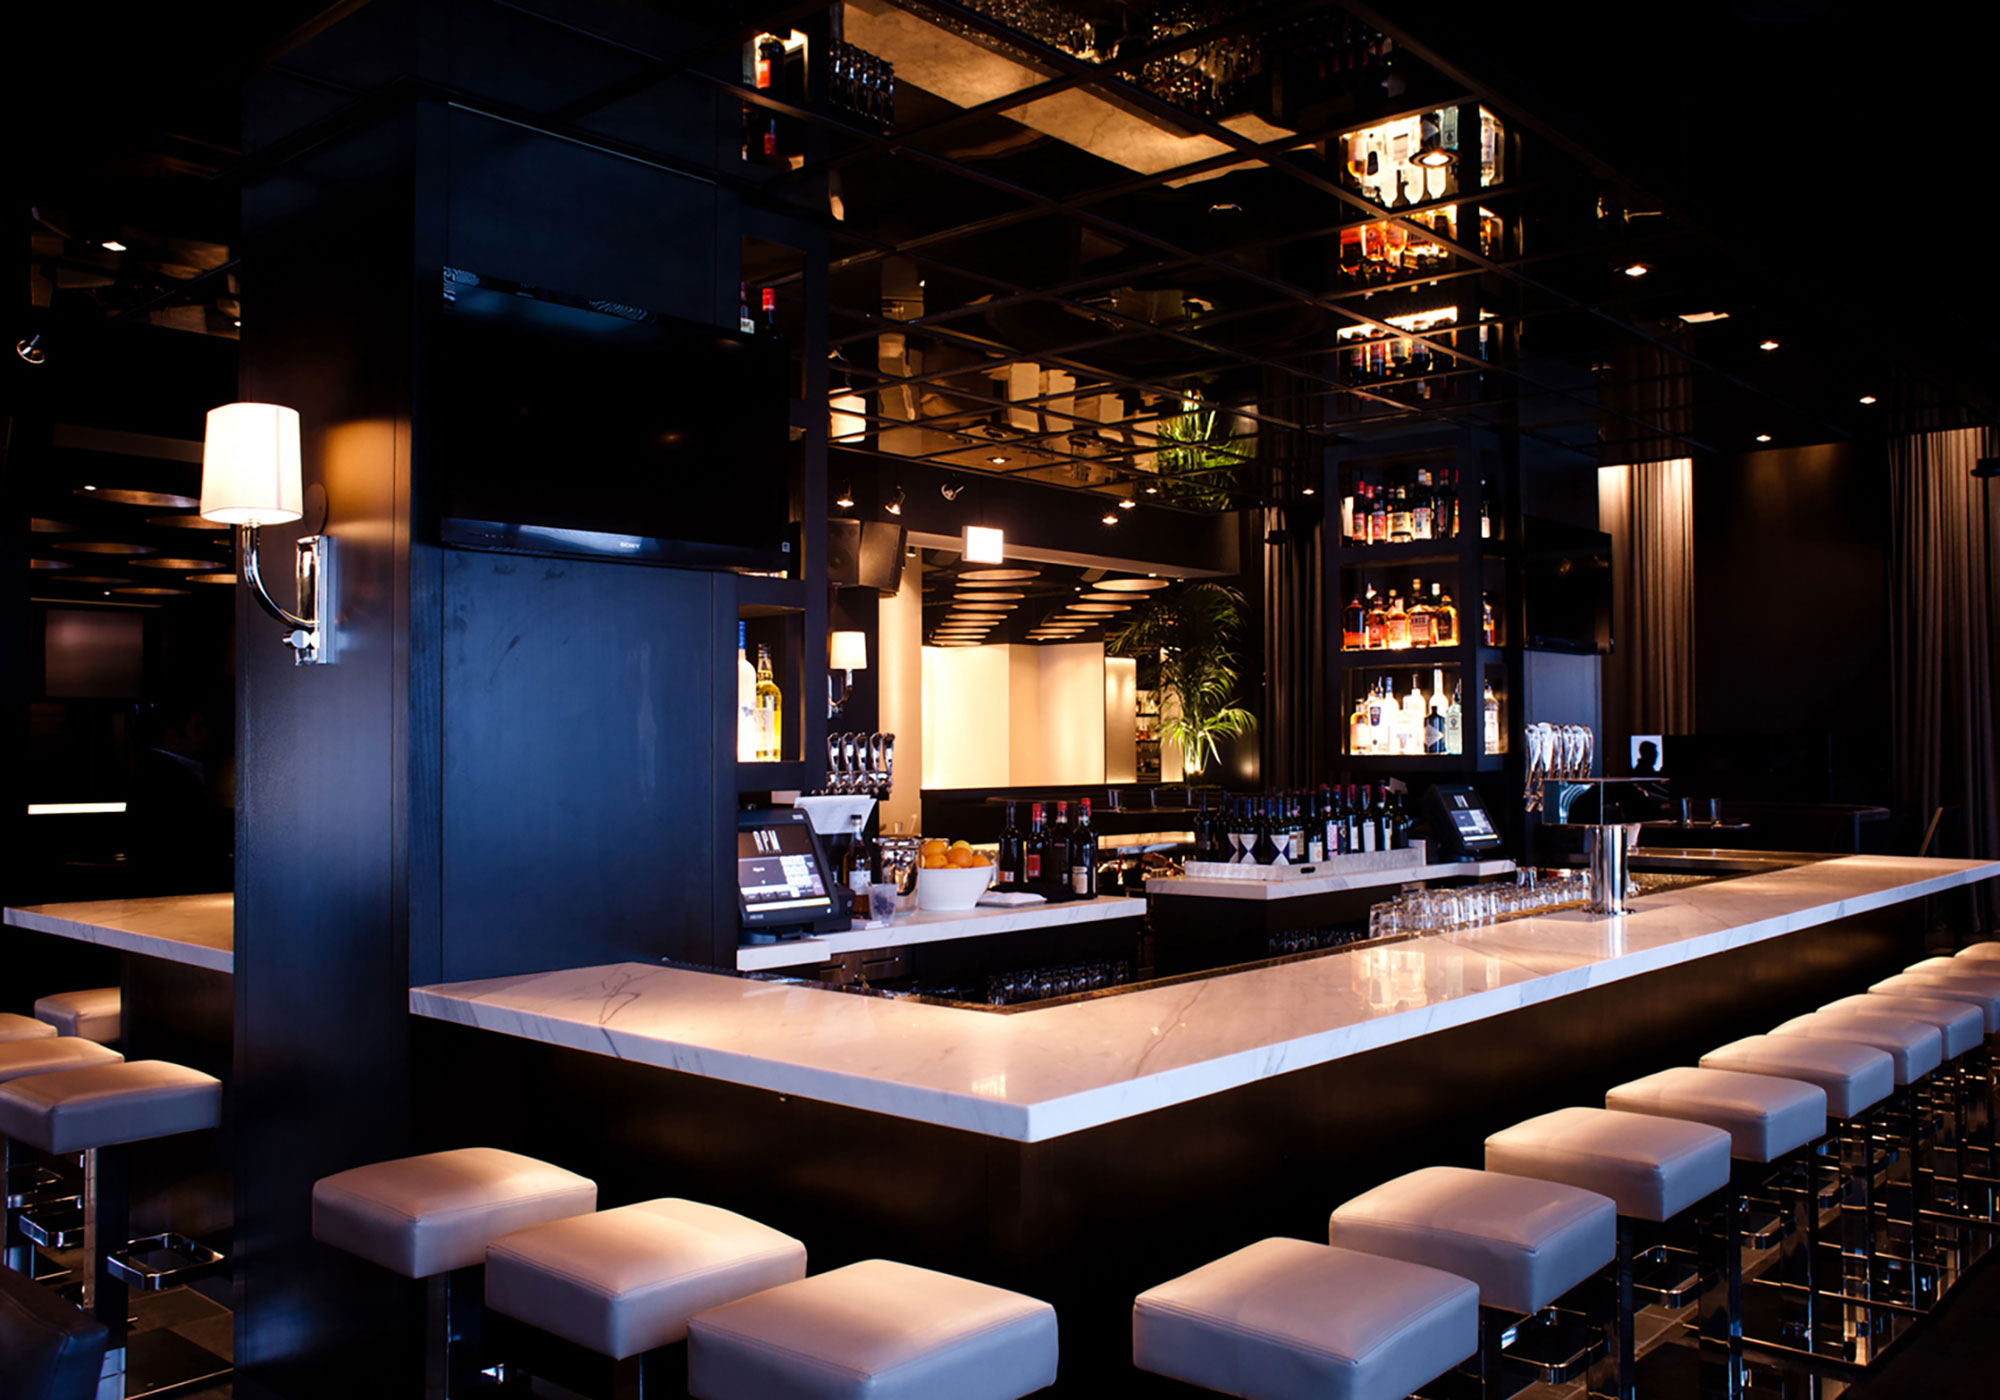 A square bar with square barstools